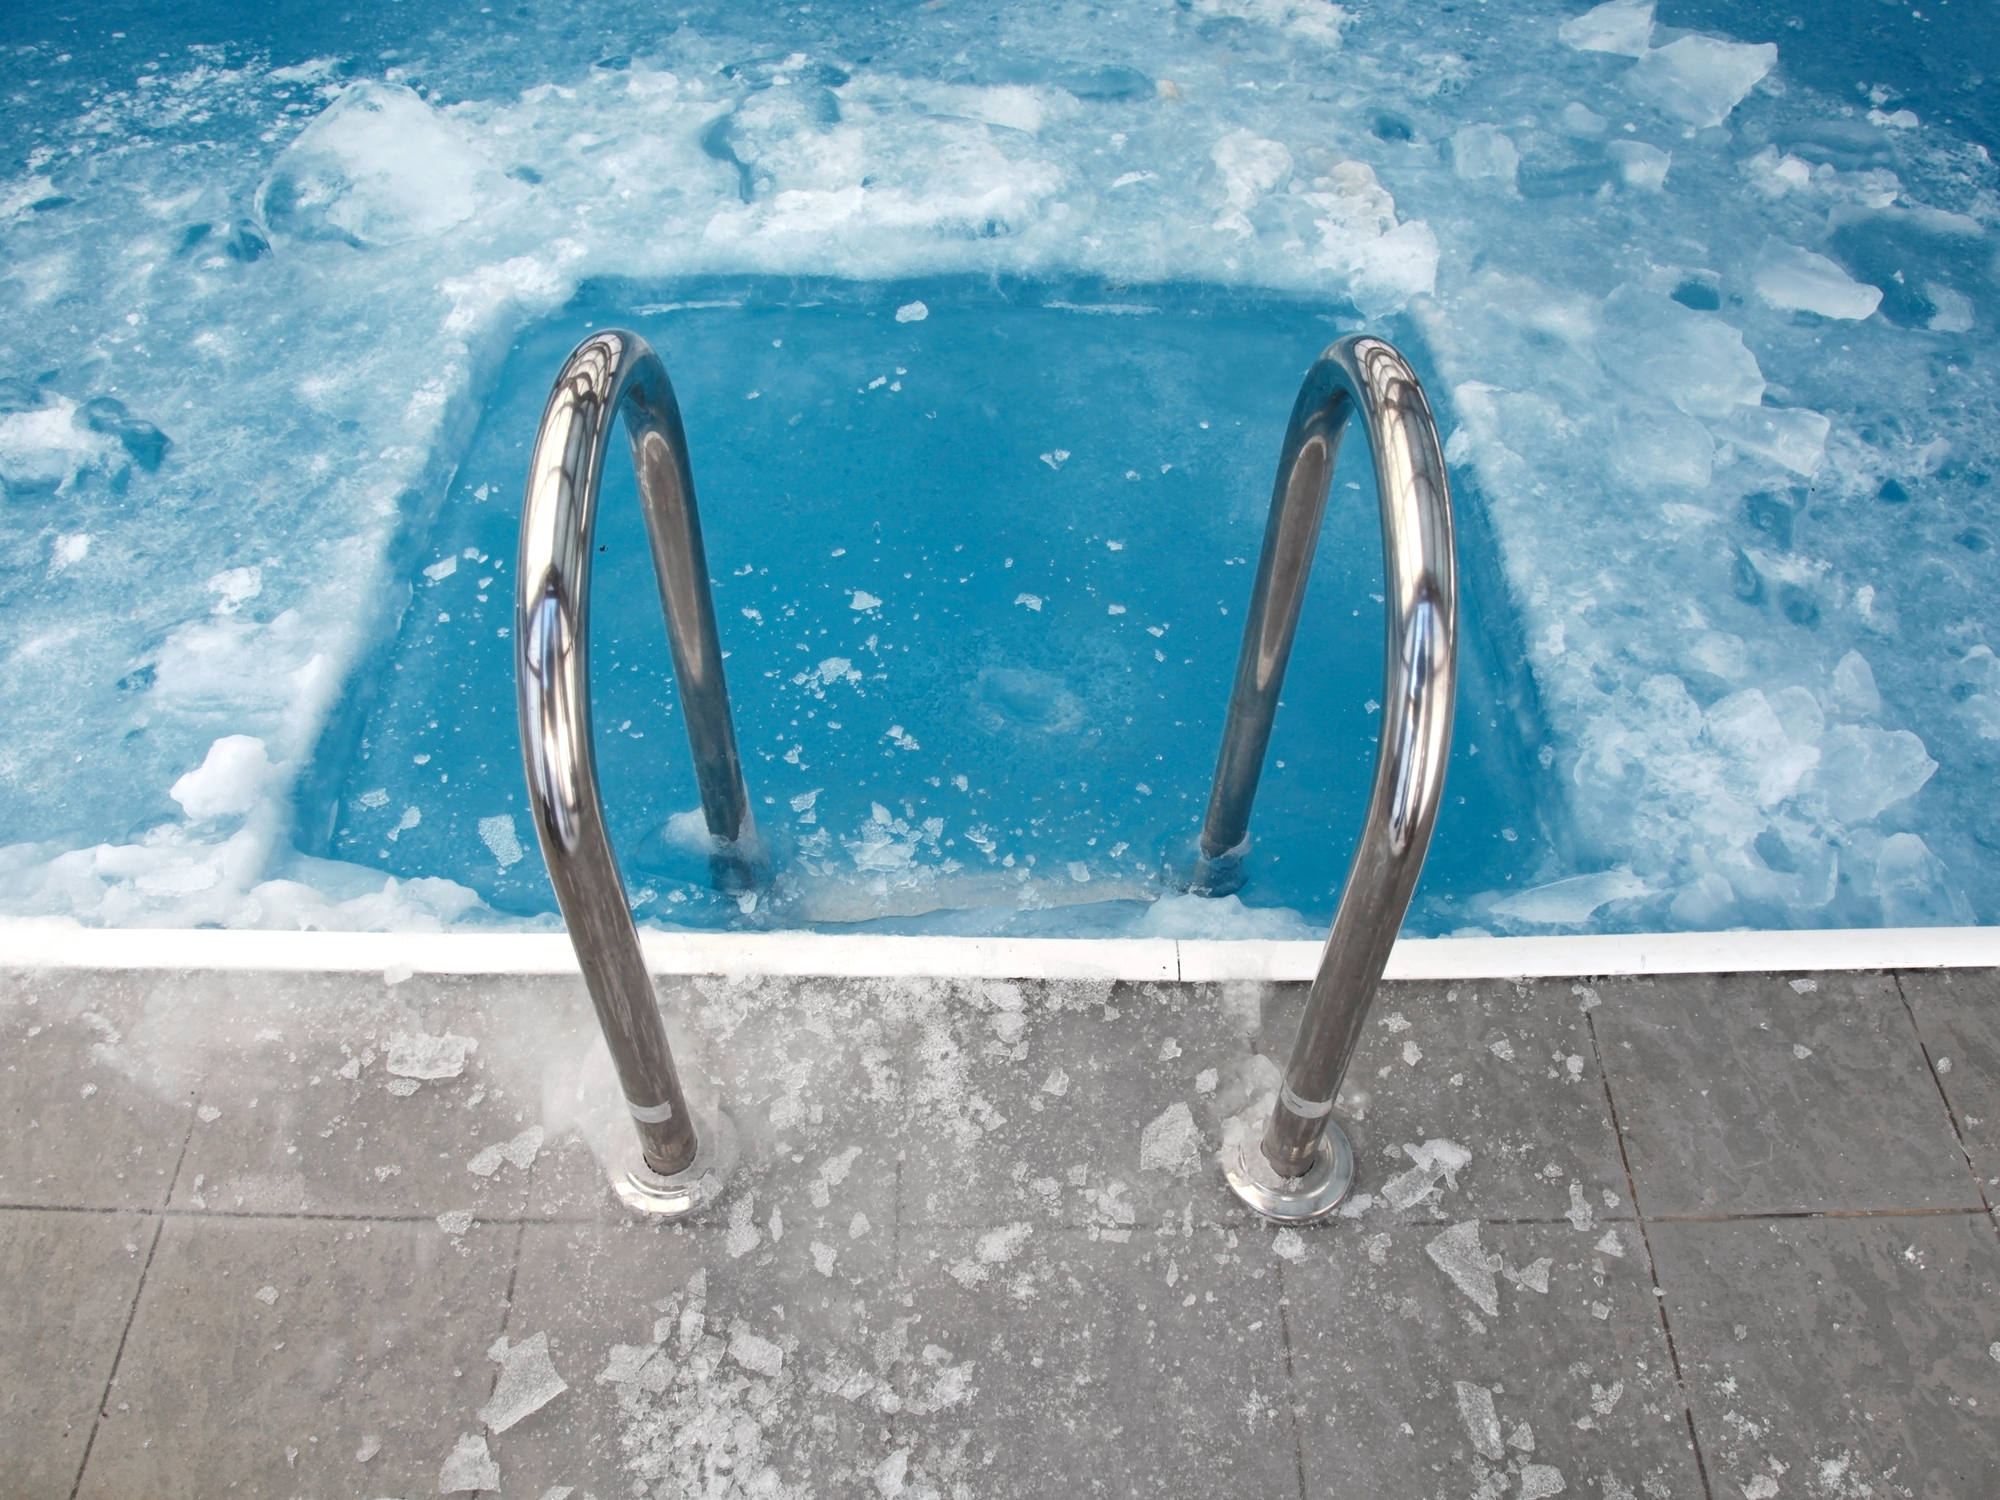 Can cold water end chronic pain? It did for this guy